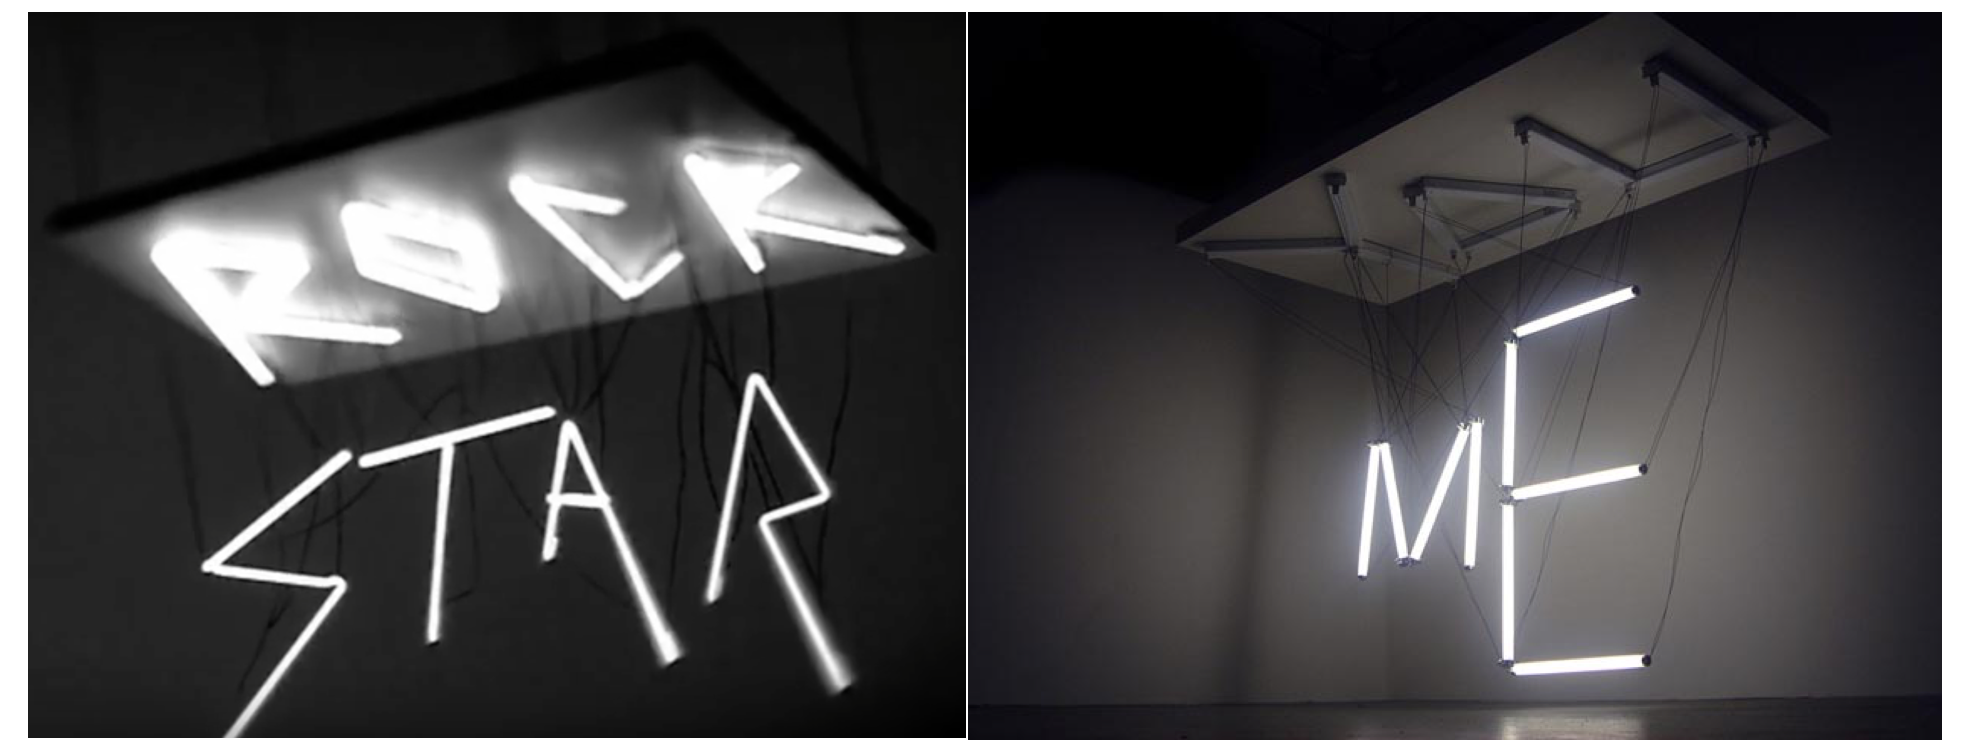 The installation from Rihanna's video (left) & Clar's work (right)